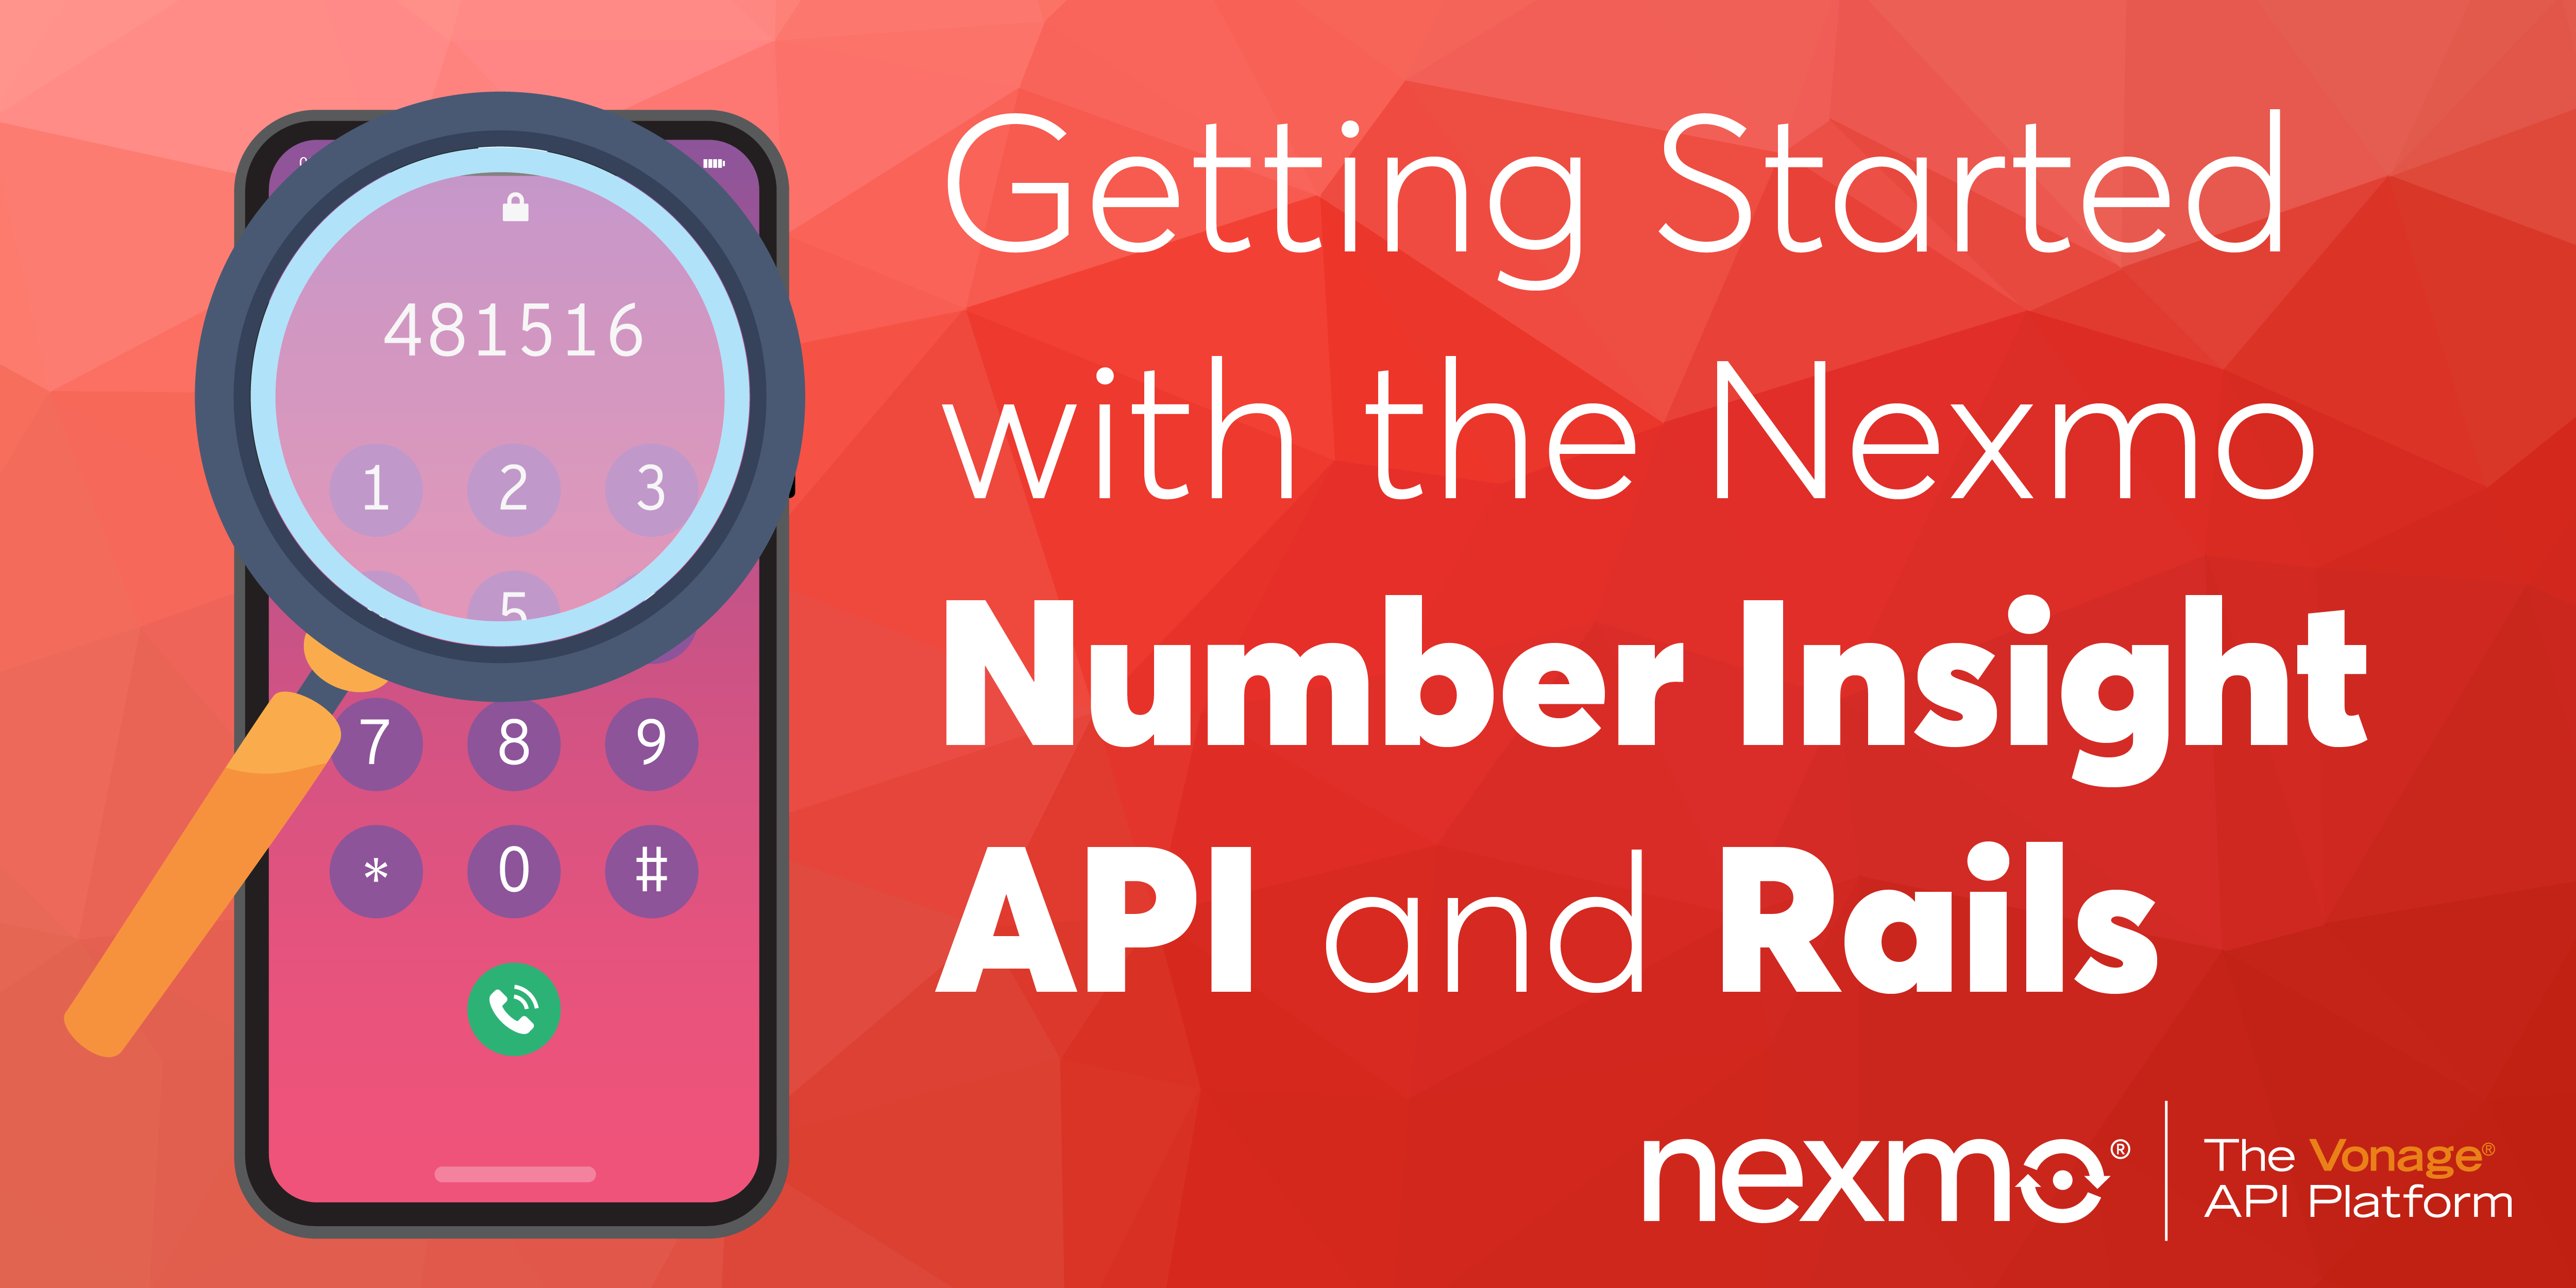 Getting Started with the Nexmo Number Insight API and Rails